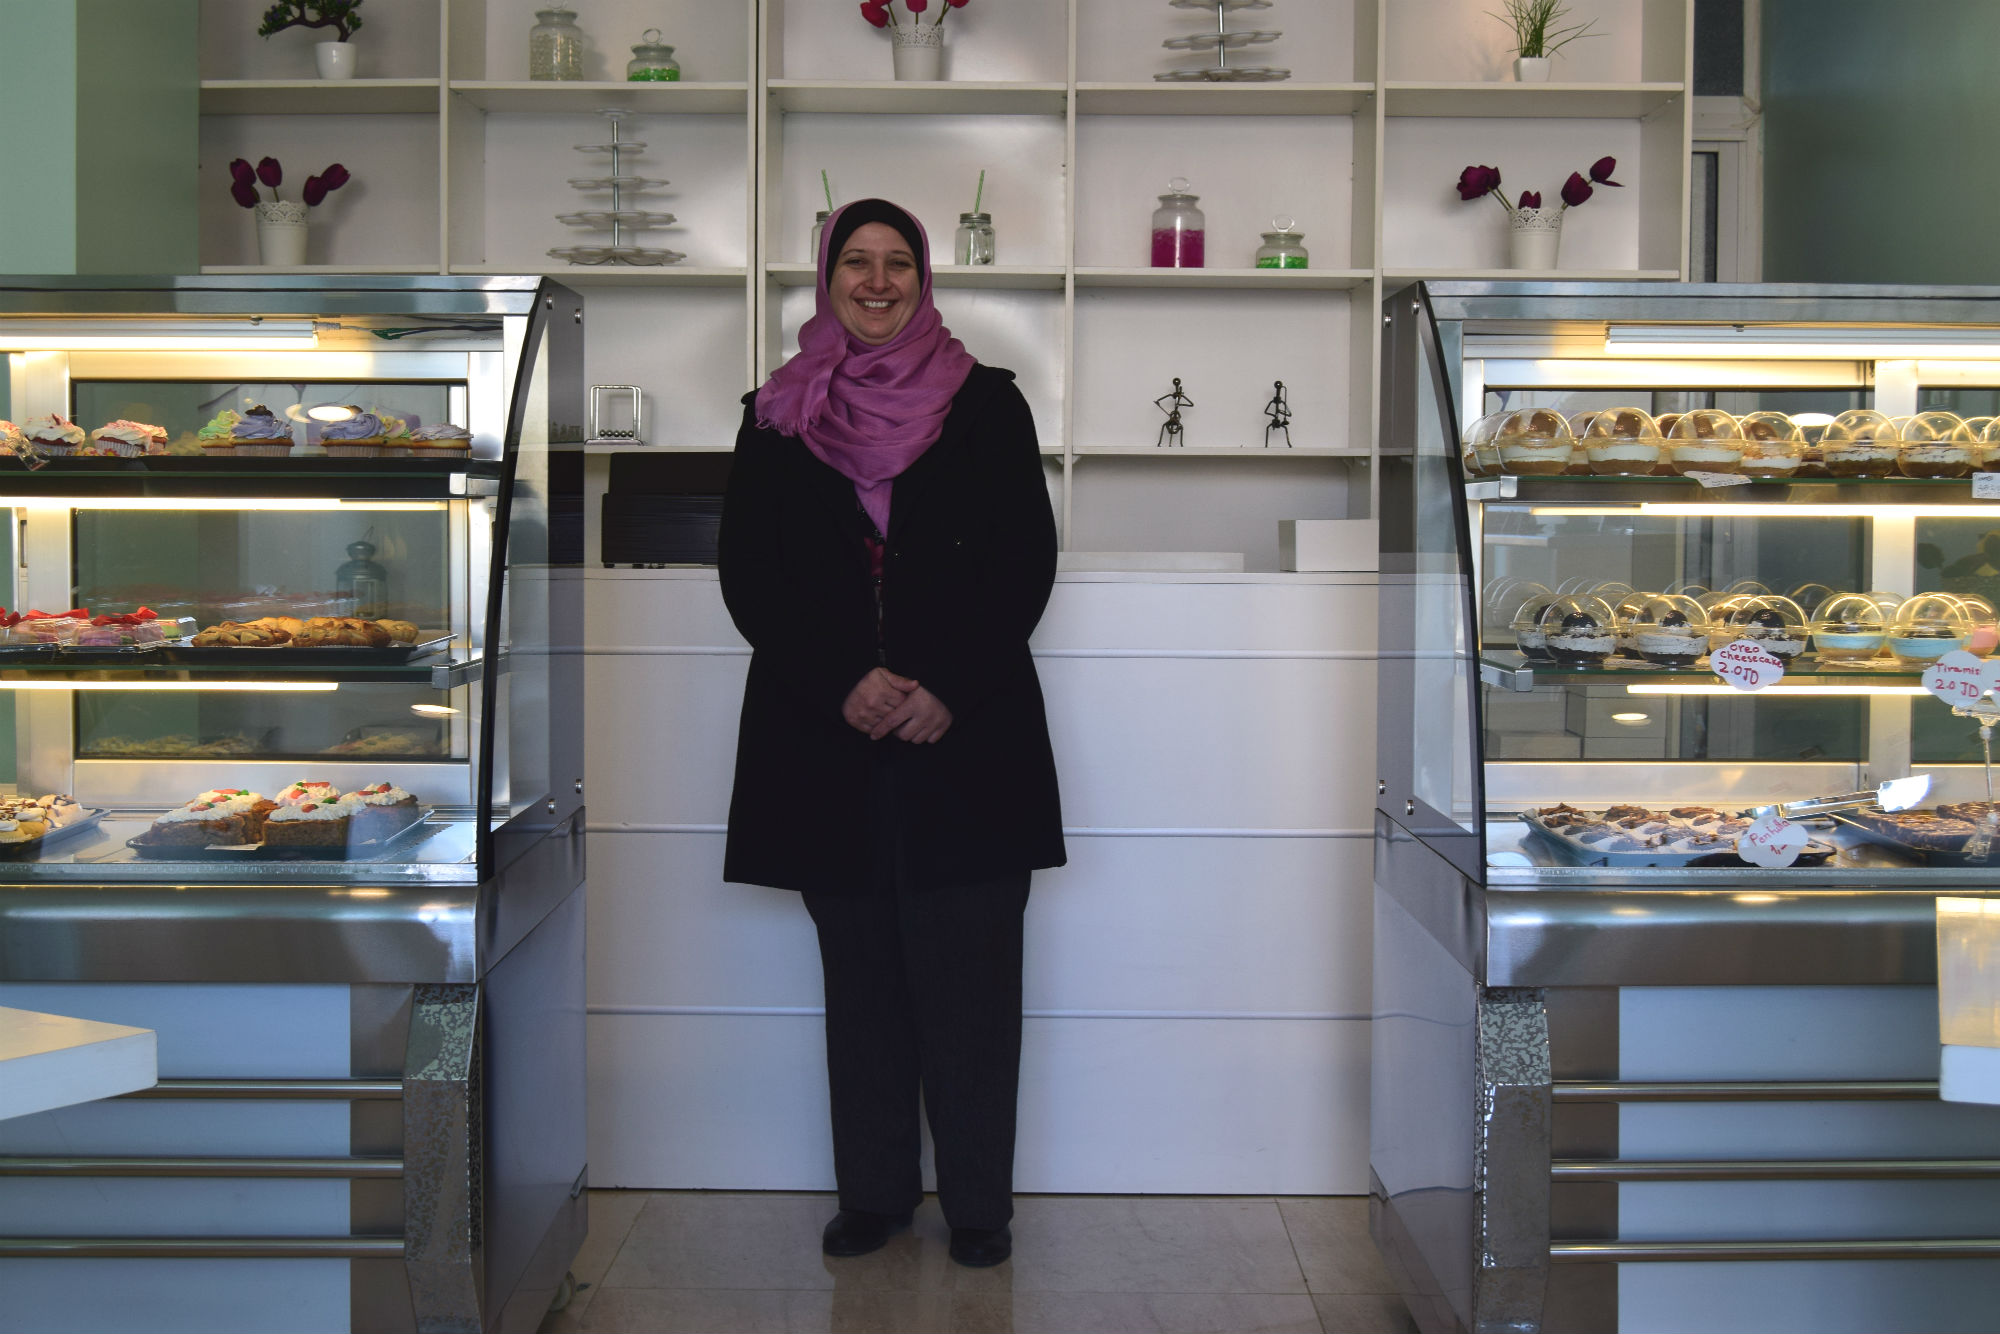 HomeBased Business Expands to Become Irbid's First WomanRun Specialty Bakery  USAID LENS